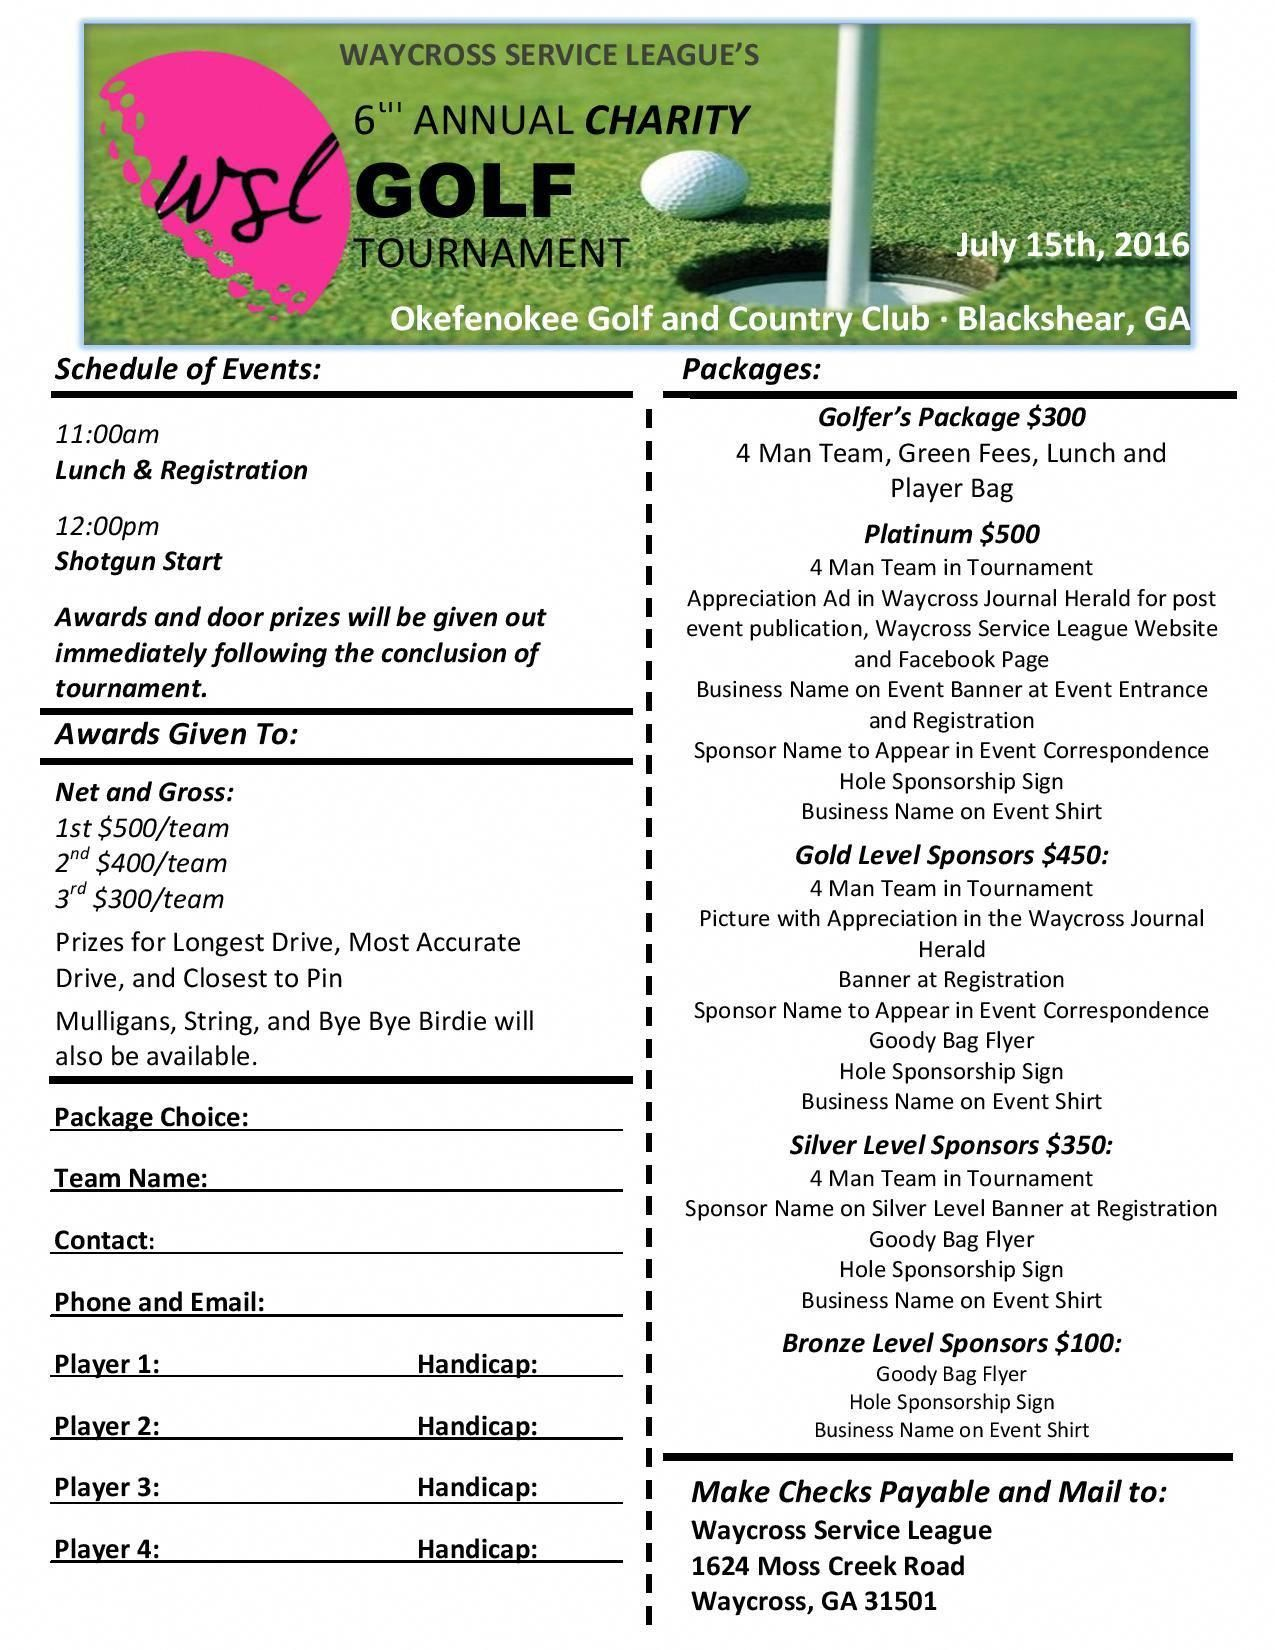 We Will Be Having Our 6th Annual Charity Golf Tournament